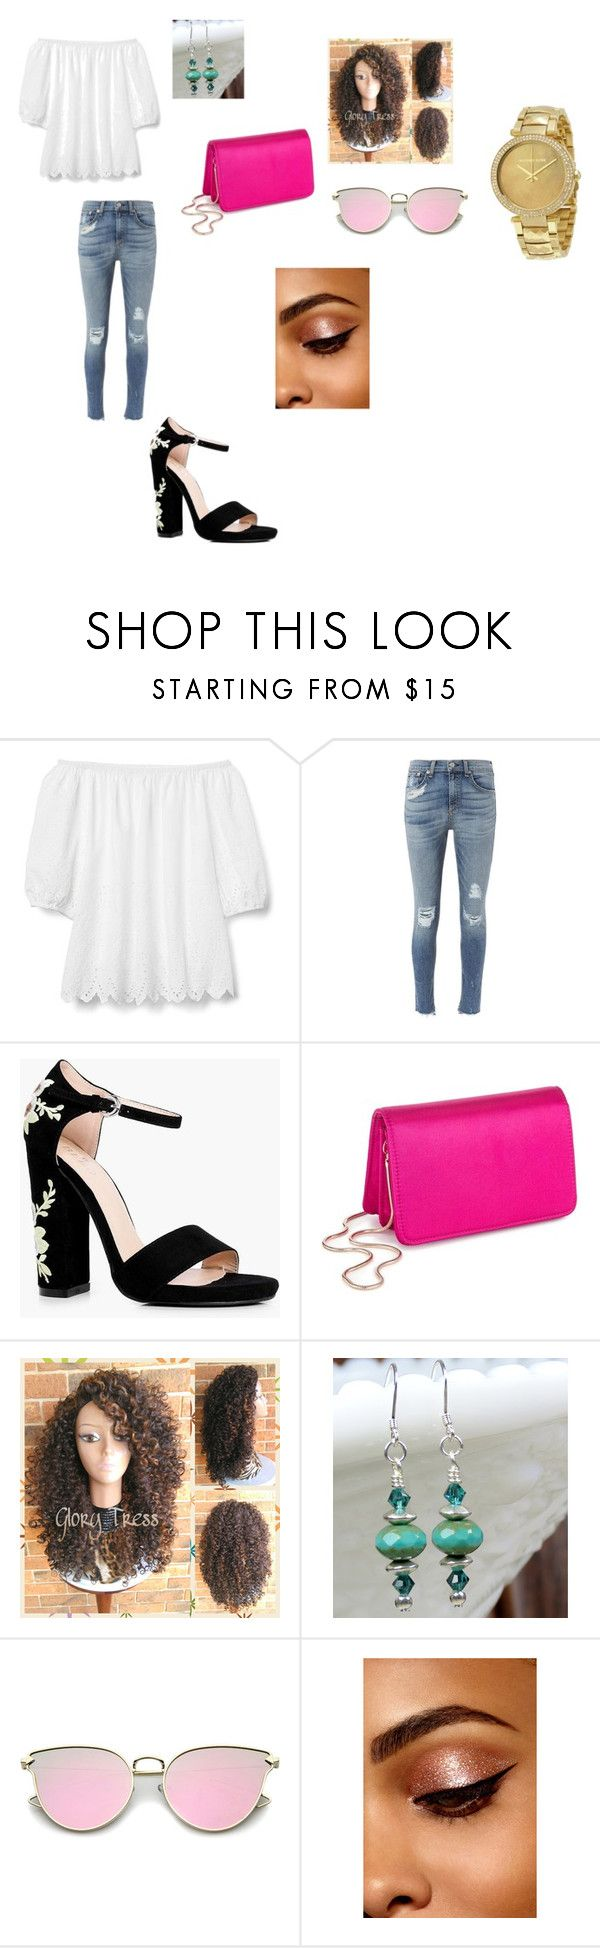 """birthday dinner outfit #yomato"" by msclarke ❤ liked on Polyvore featuring Gap, rag & bone, Boohoo, Miss Selfridge and Michael Kors"